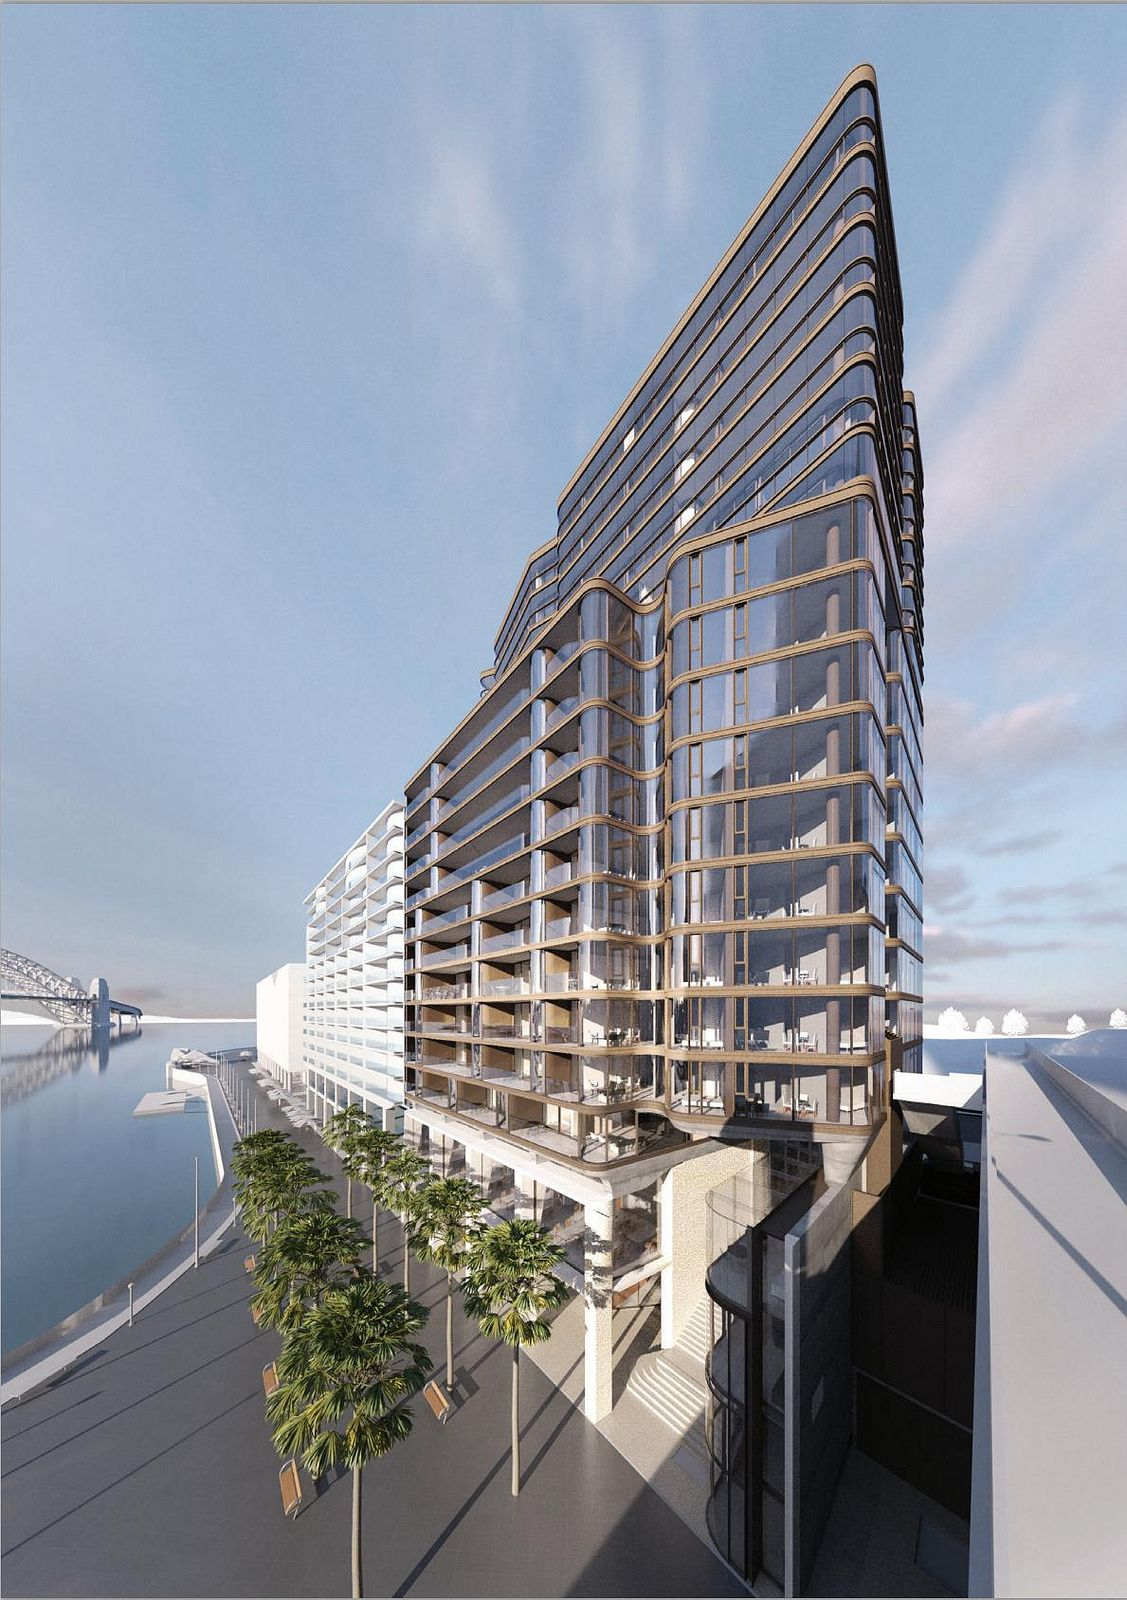 Approved CBD NORTH 7179 Macquarie Street 19st/64m